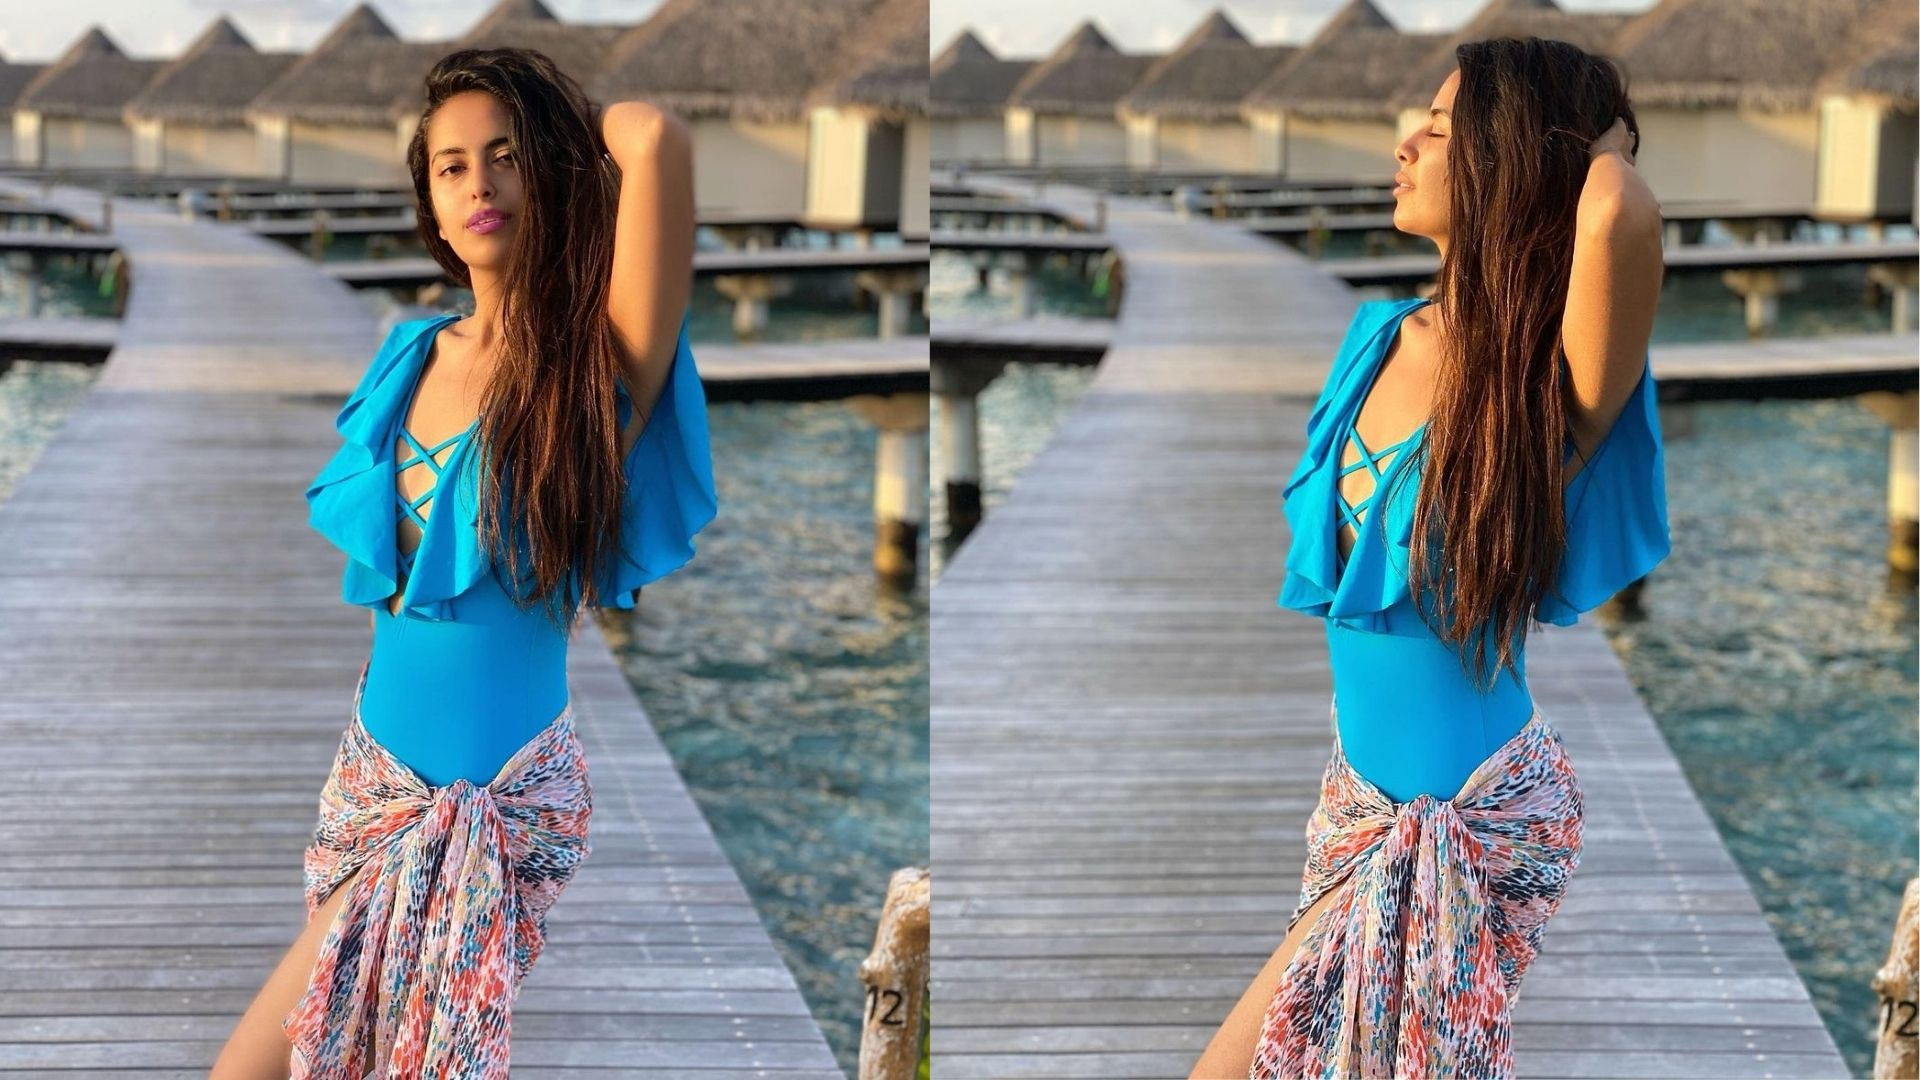 Avika Gor Is Breaking The Internet With Her Hot Bikini Pictures From Her Maldives Vacay